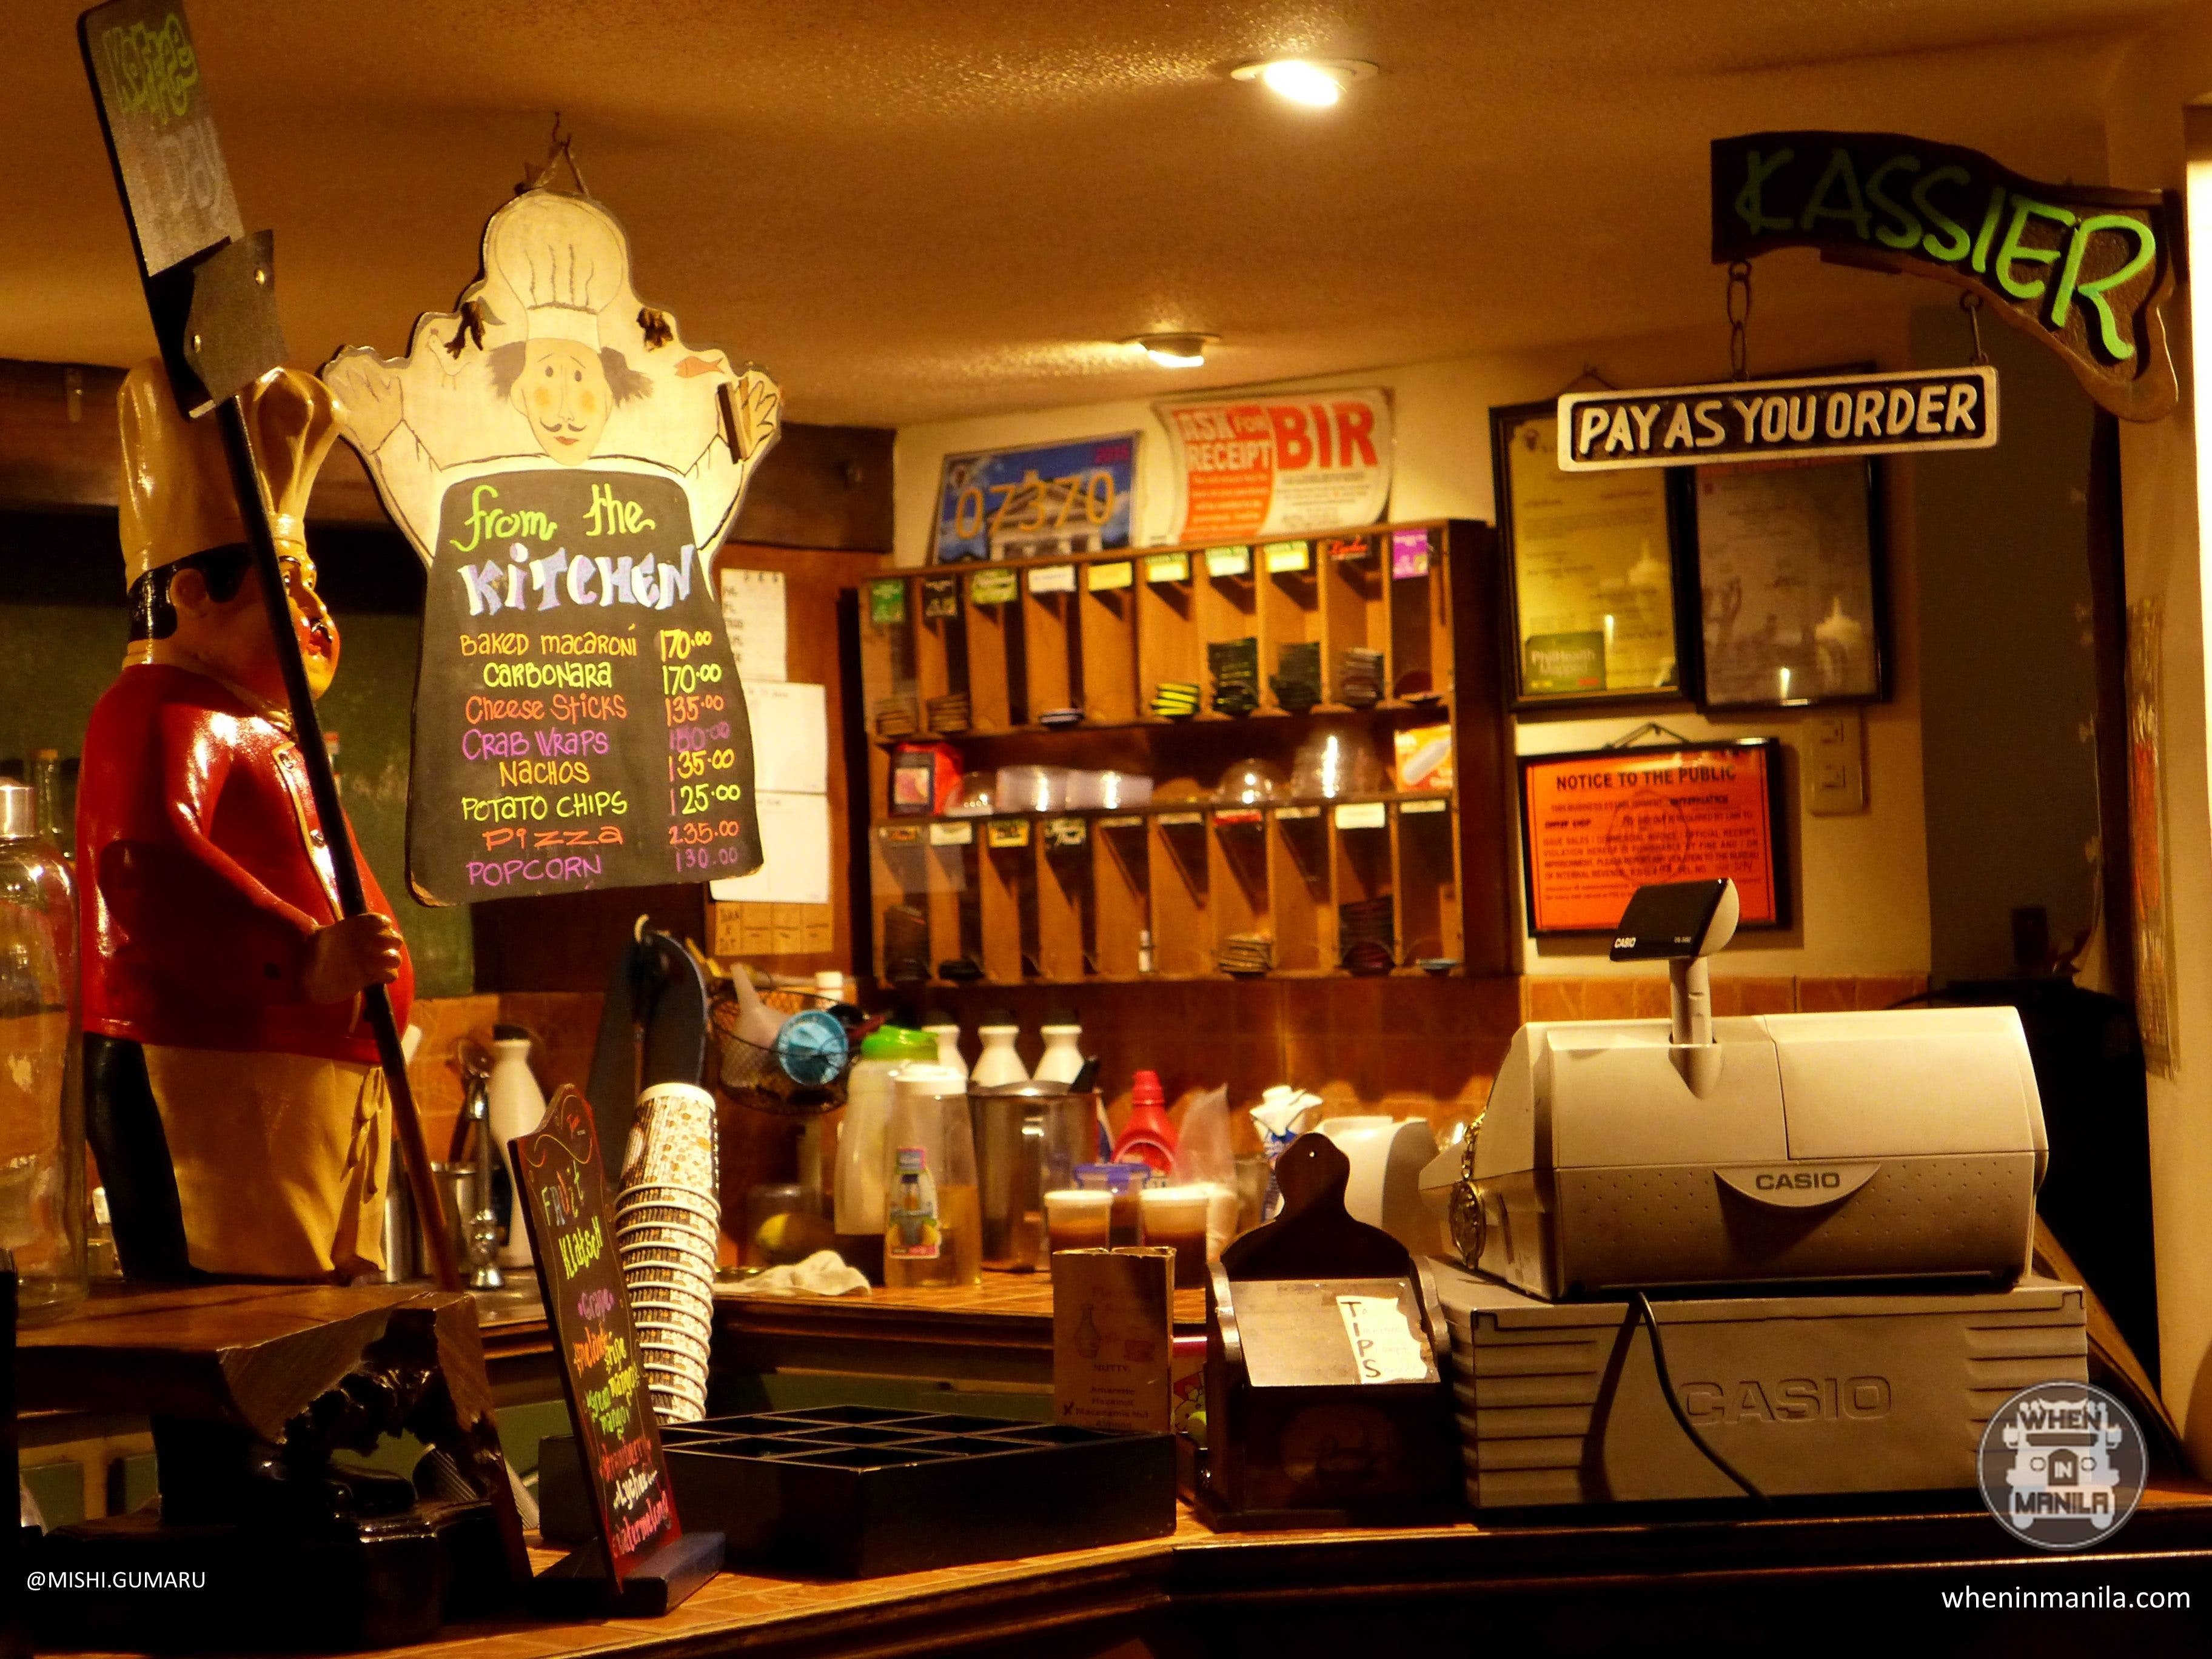 5-Cool-And-Quirky-Cafes-You-Must-Check-Out-When-In-Baguio22